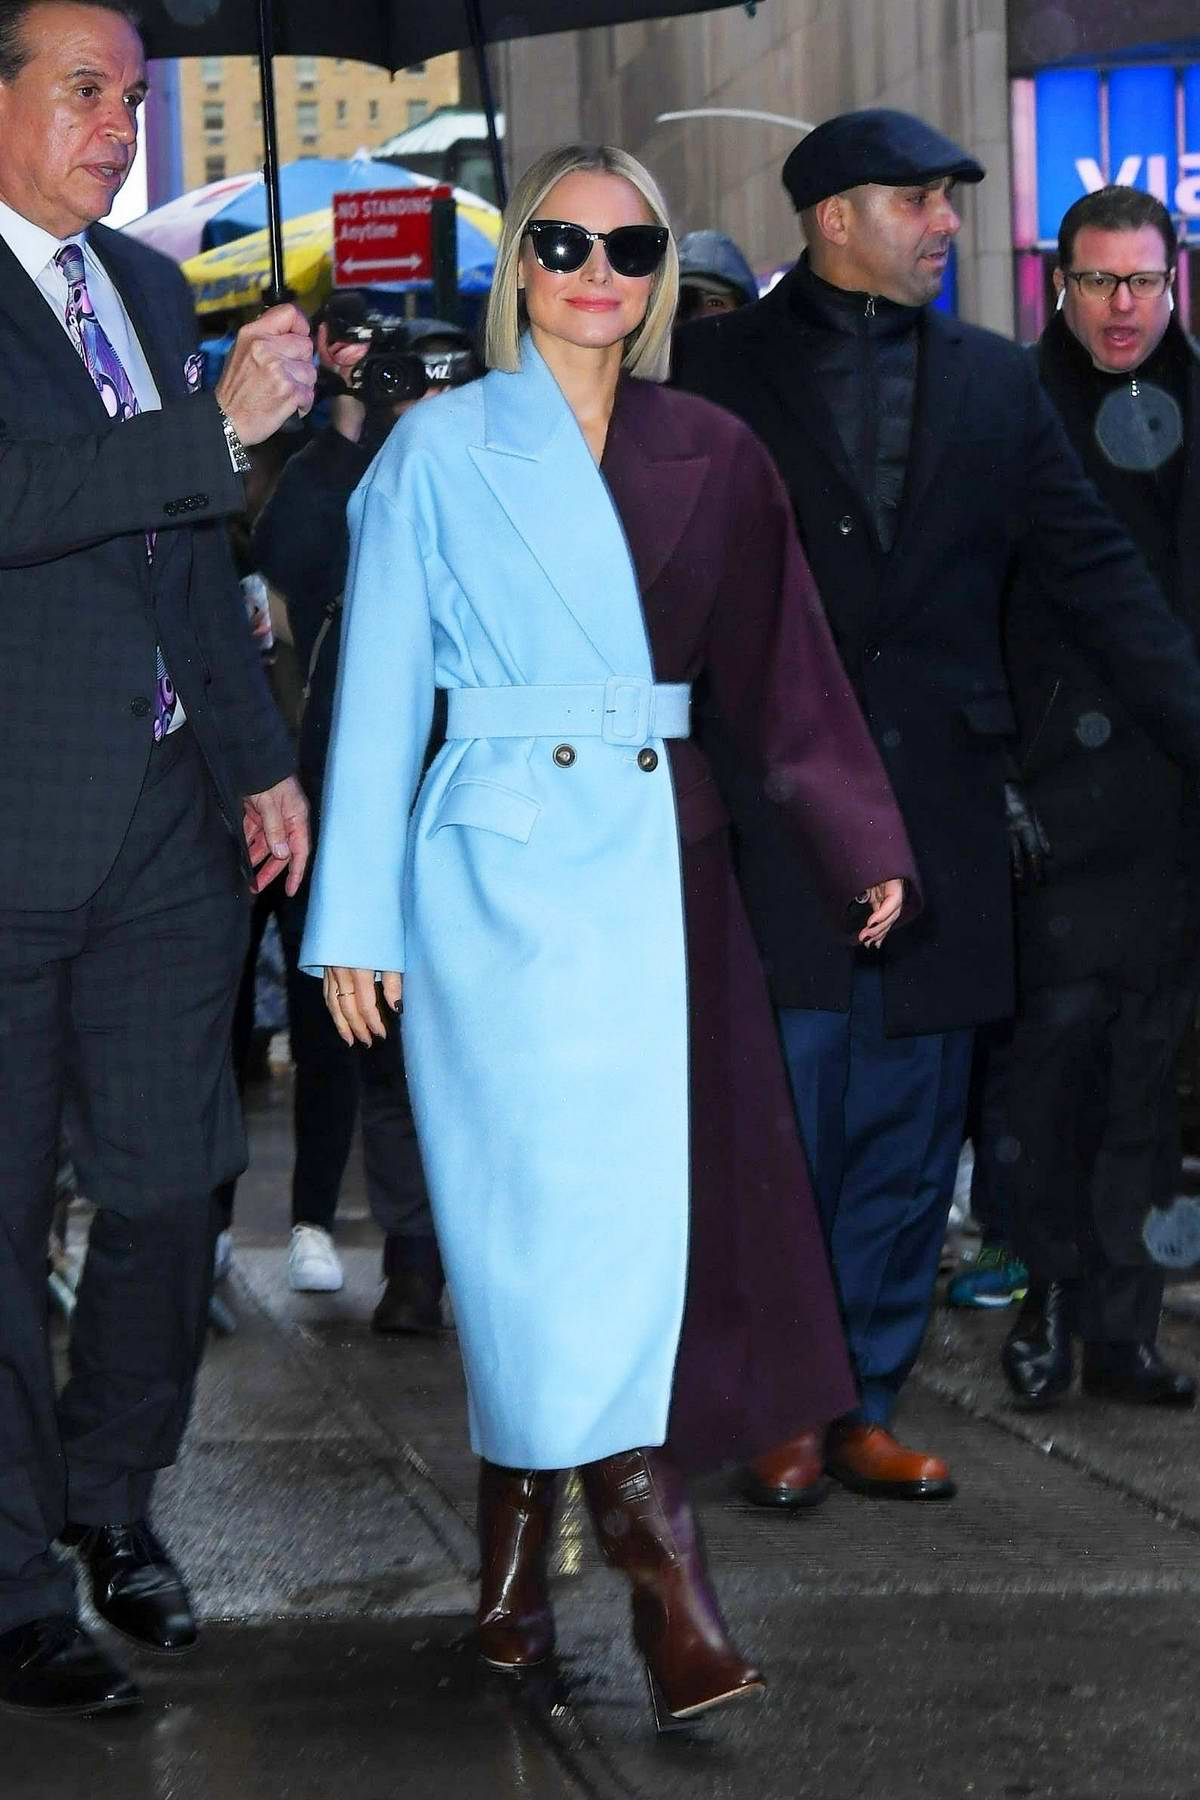 Kristen Bell wears color-block blue and purple trench coat while visiting 'Good Morning America' to promote 'Frozen 2' in New York City